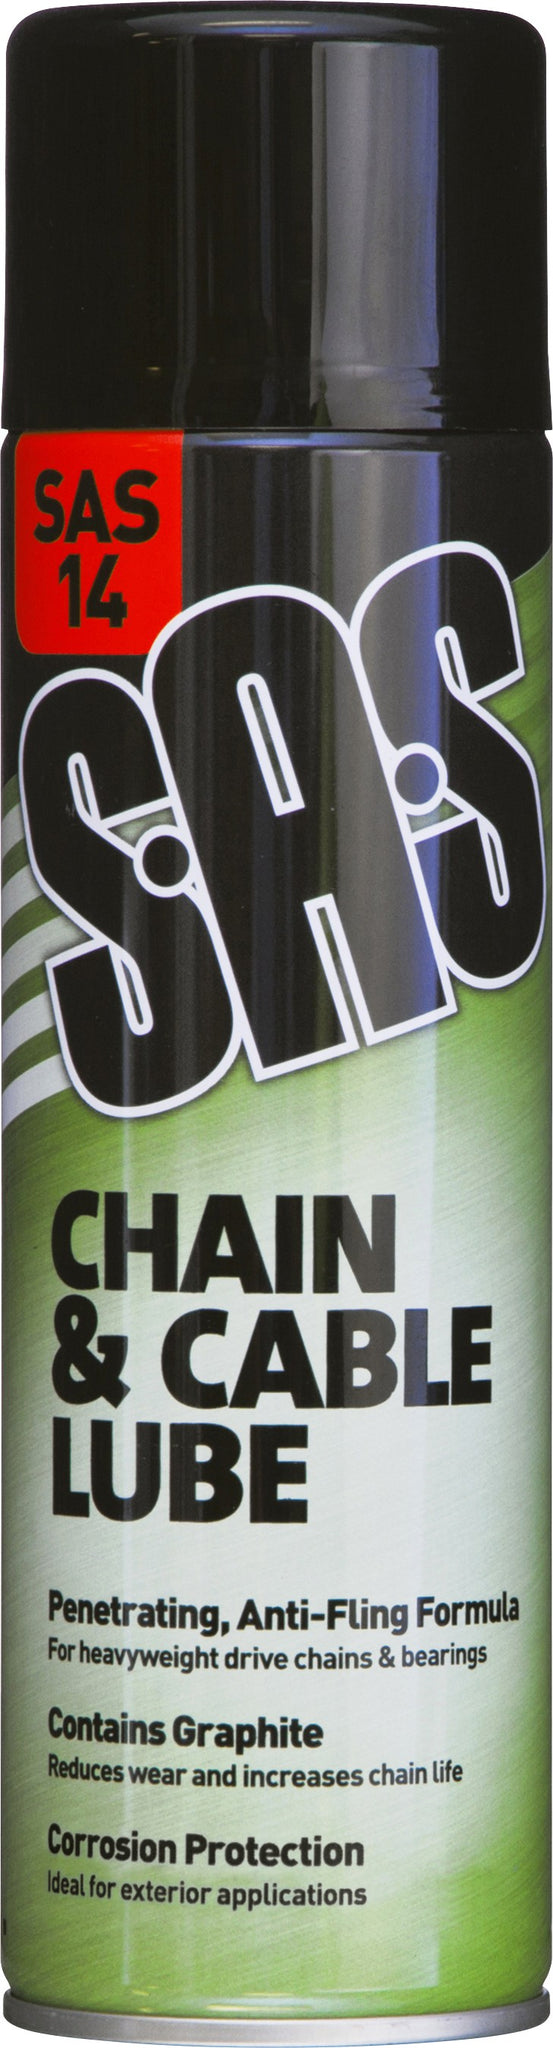 SAS14 Chain and Cable Lube 500ml. Pack of 6.